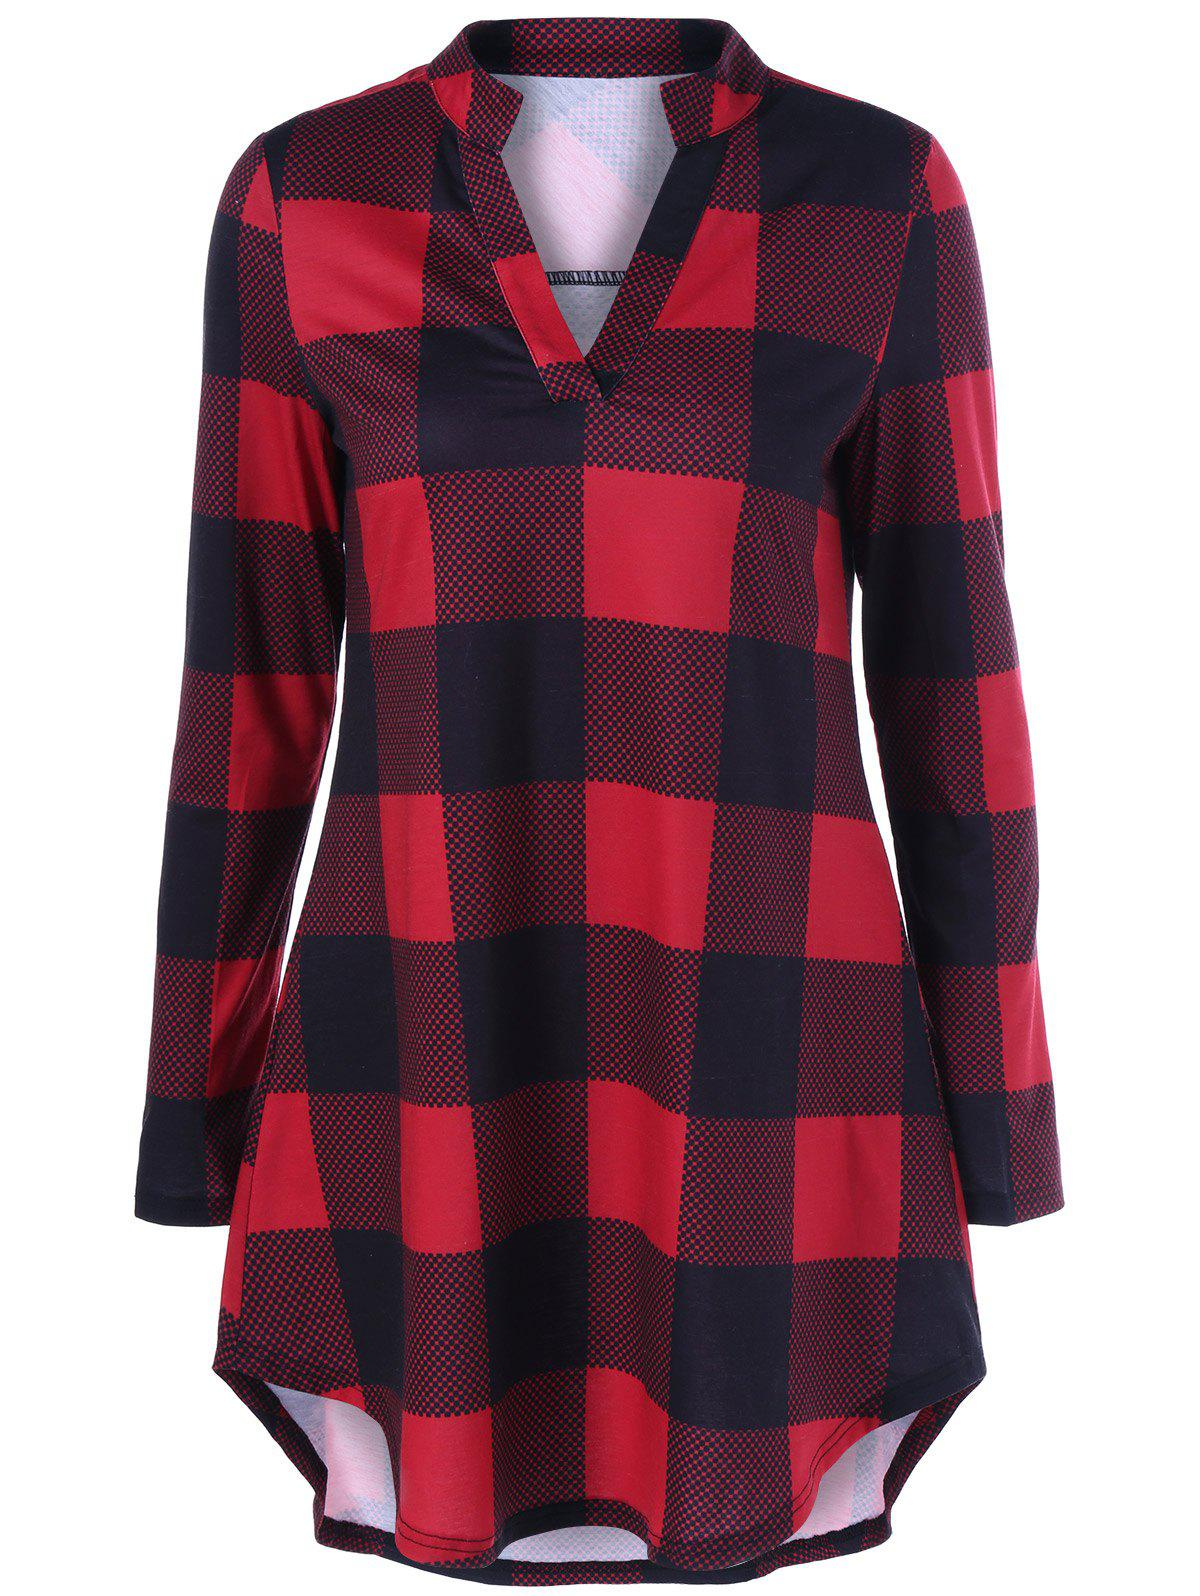 Split Neck Long Plaid Boyfriend T-Shirt - RED/BLACK 2XL